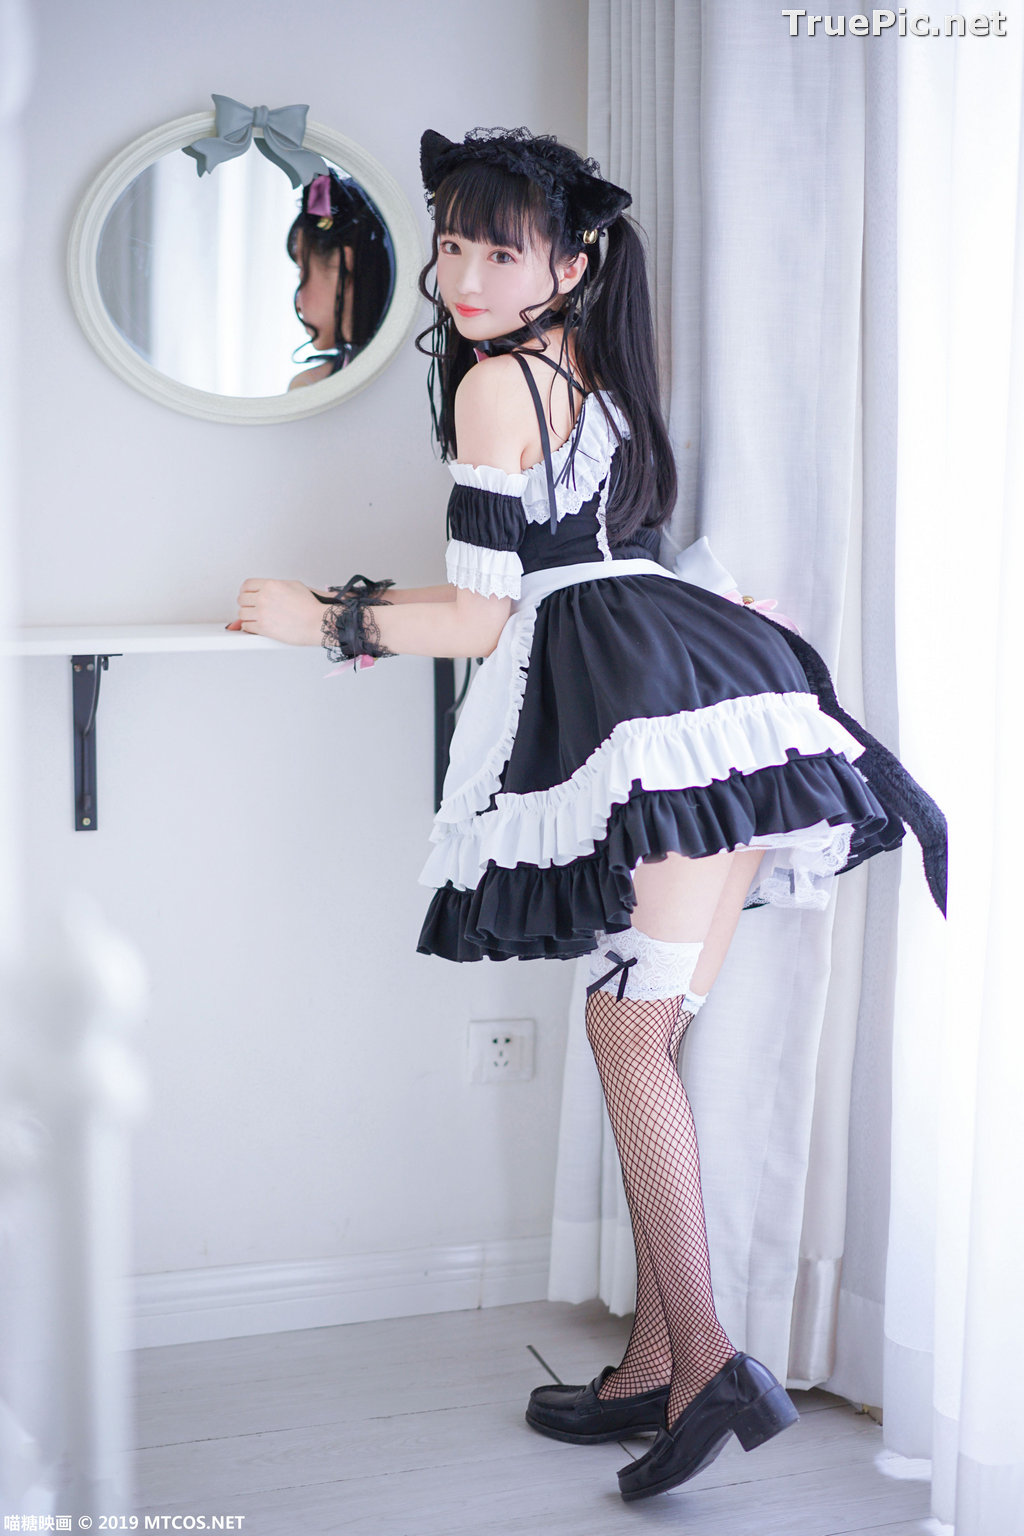 Image [MTCos] 喵糖映画 Vol.051 - Chinese Cute Model - Lovely Maid Cat - TruePic.net - Picture-9